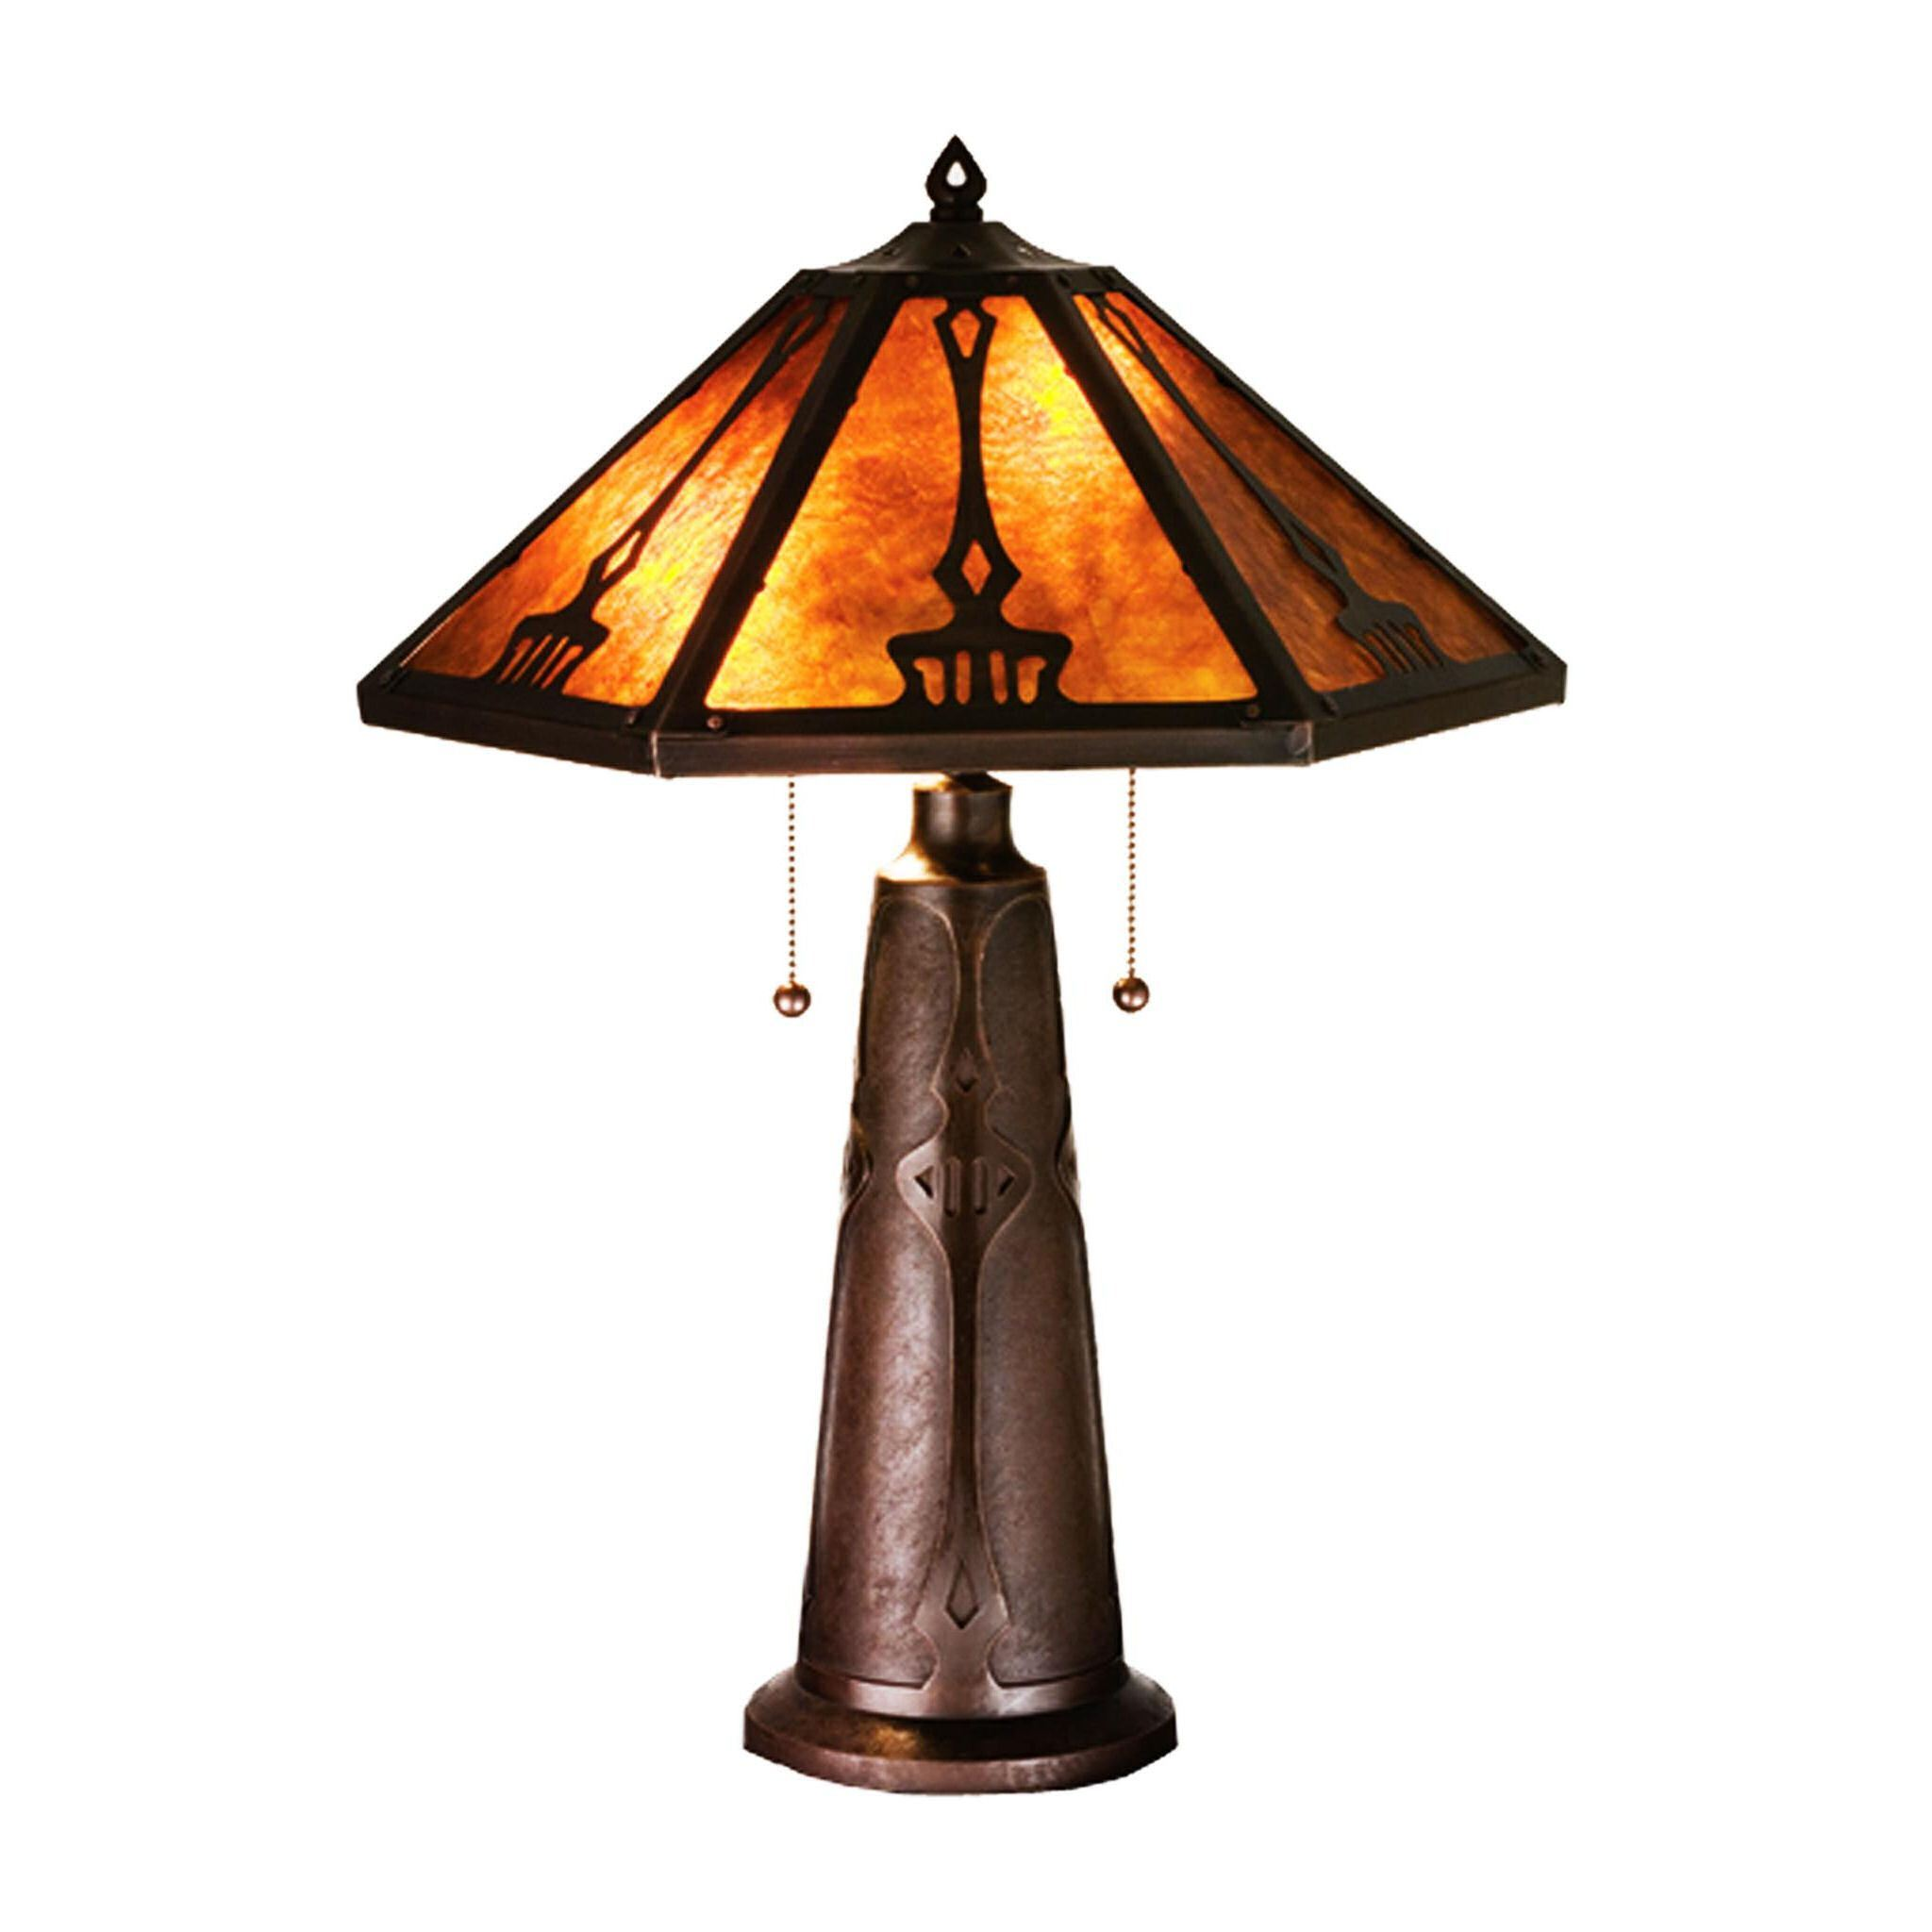 meyda tiffany lamp style inch grenway amber mica table accent lamps gold chestnut console with doors girls desk black dining room chairs tablecloth factory small bedroom modern